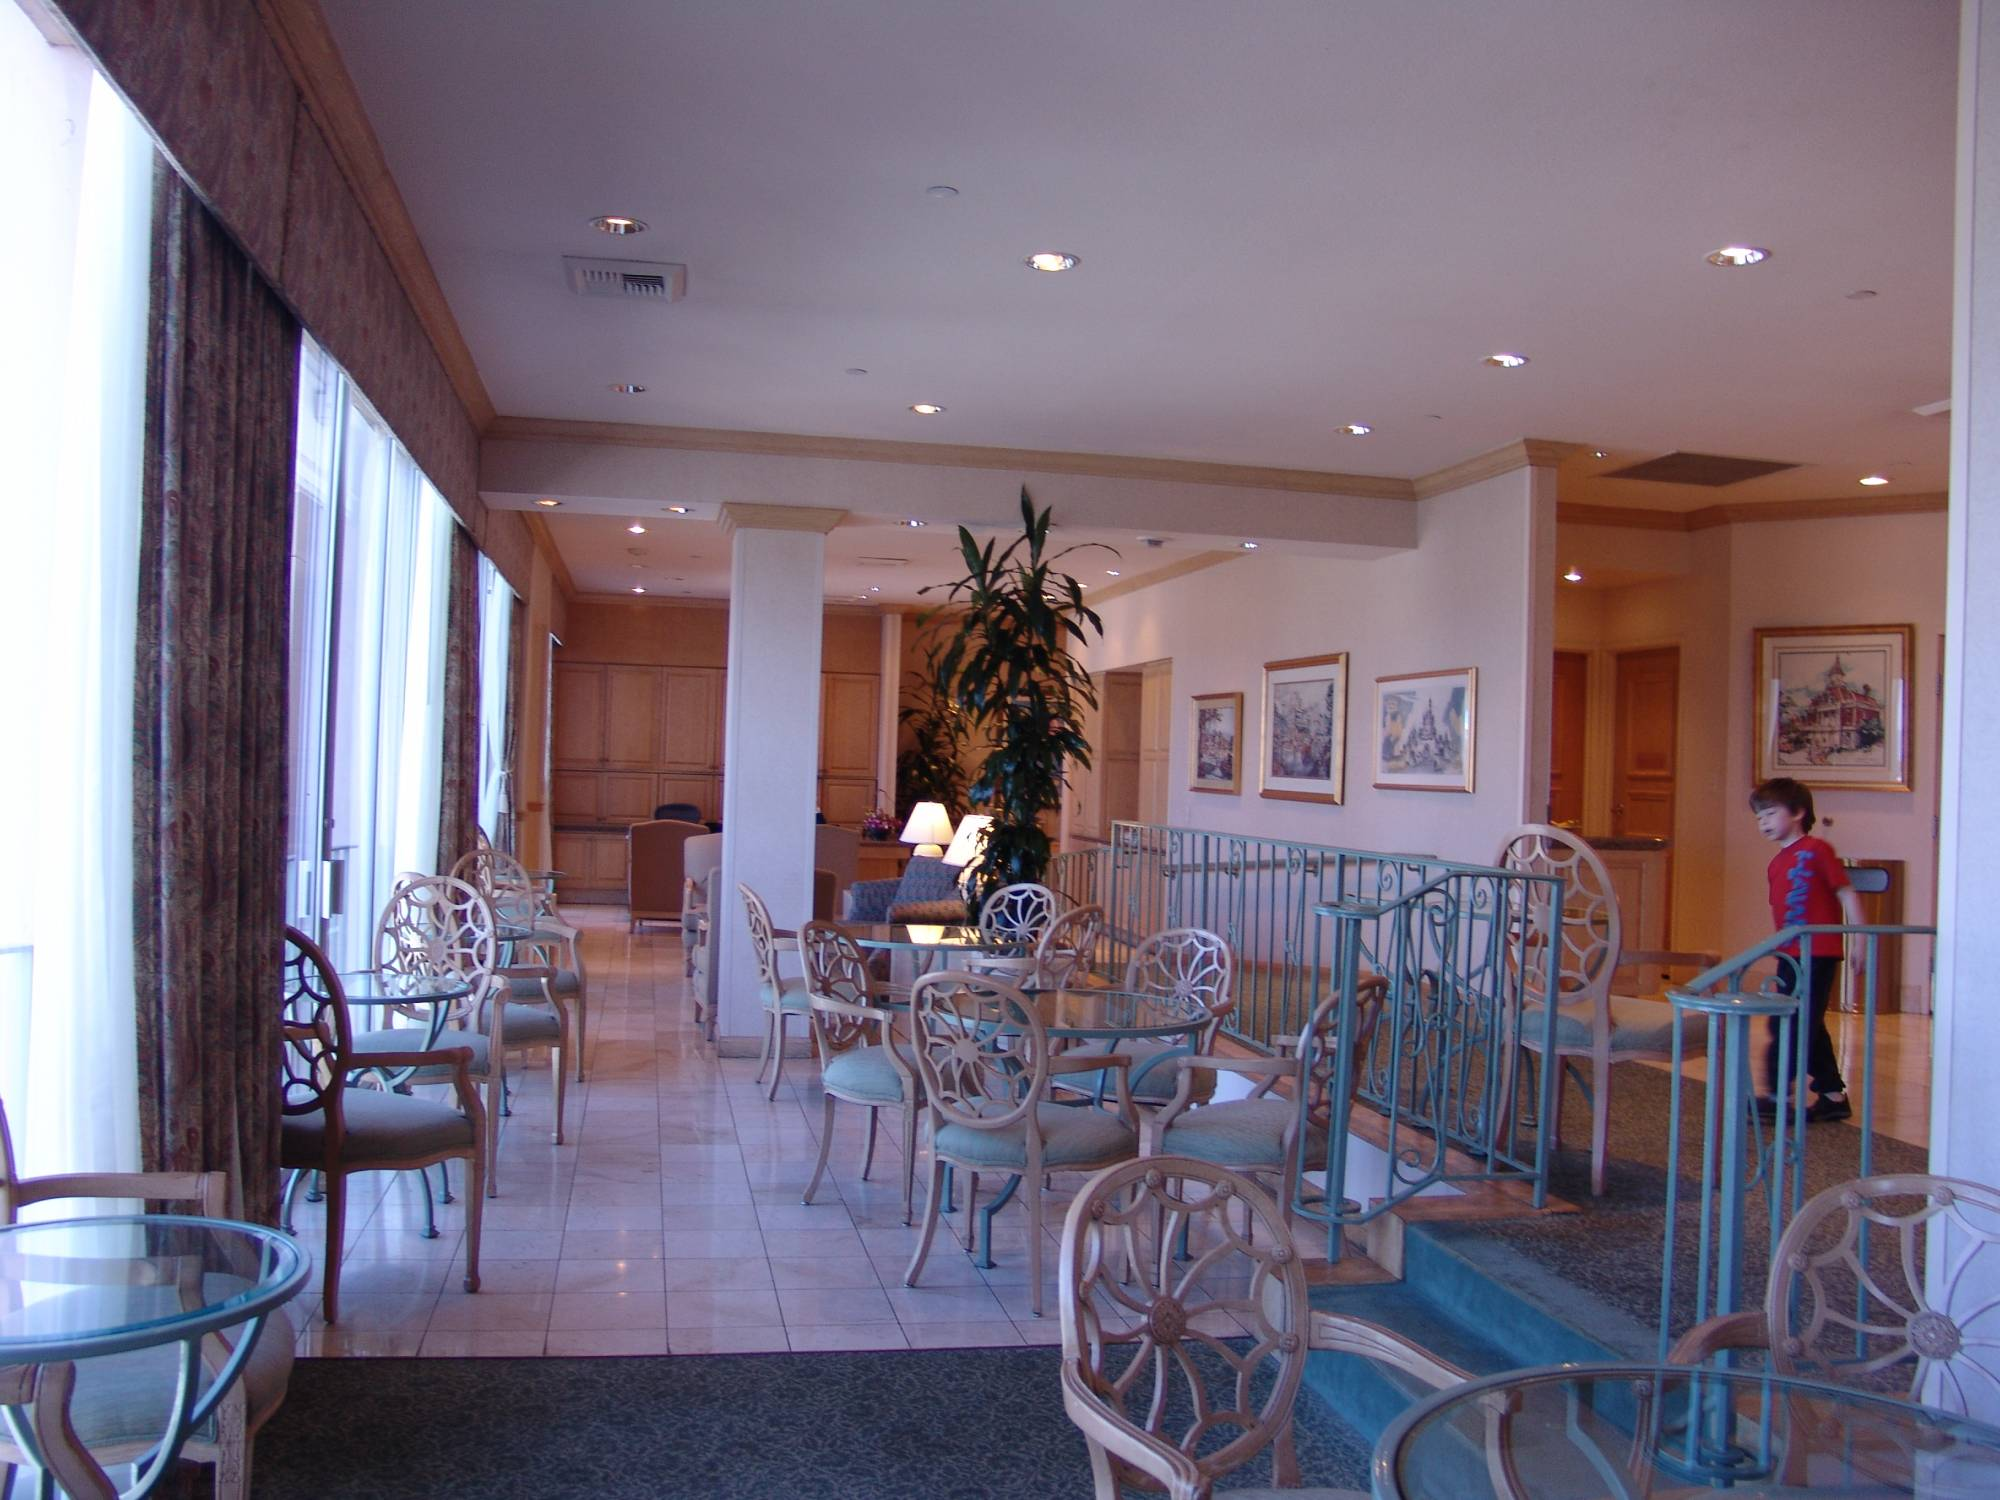 Disneyland Hotel - concierge lounge